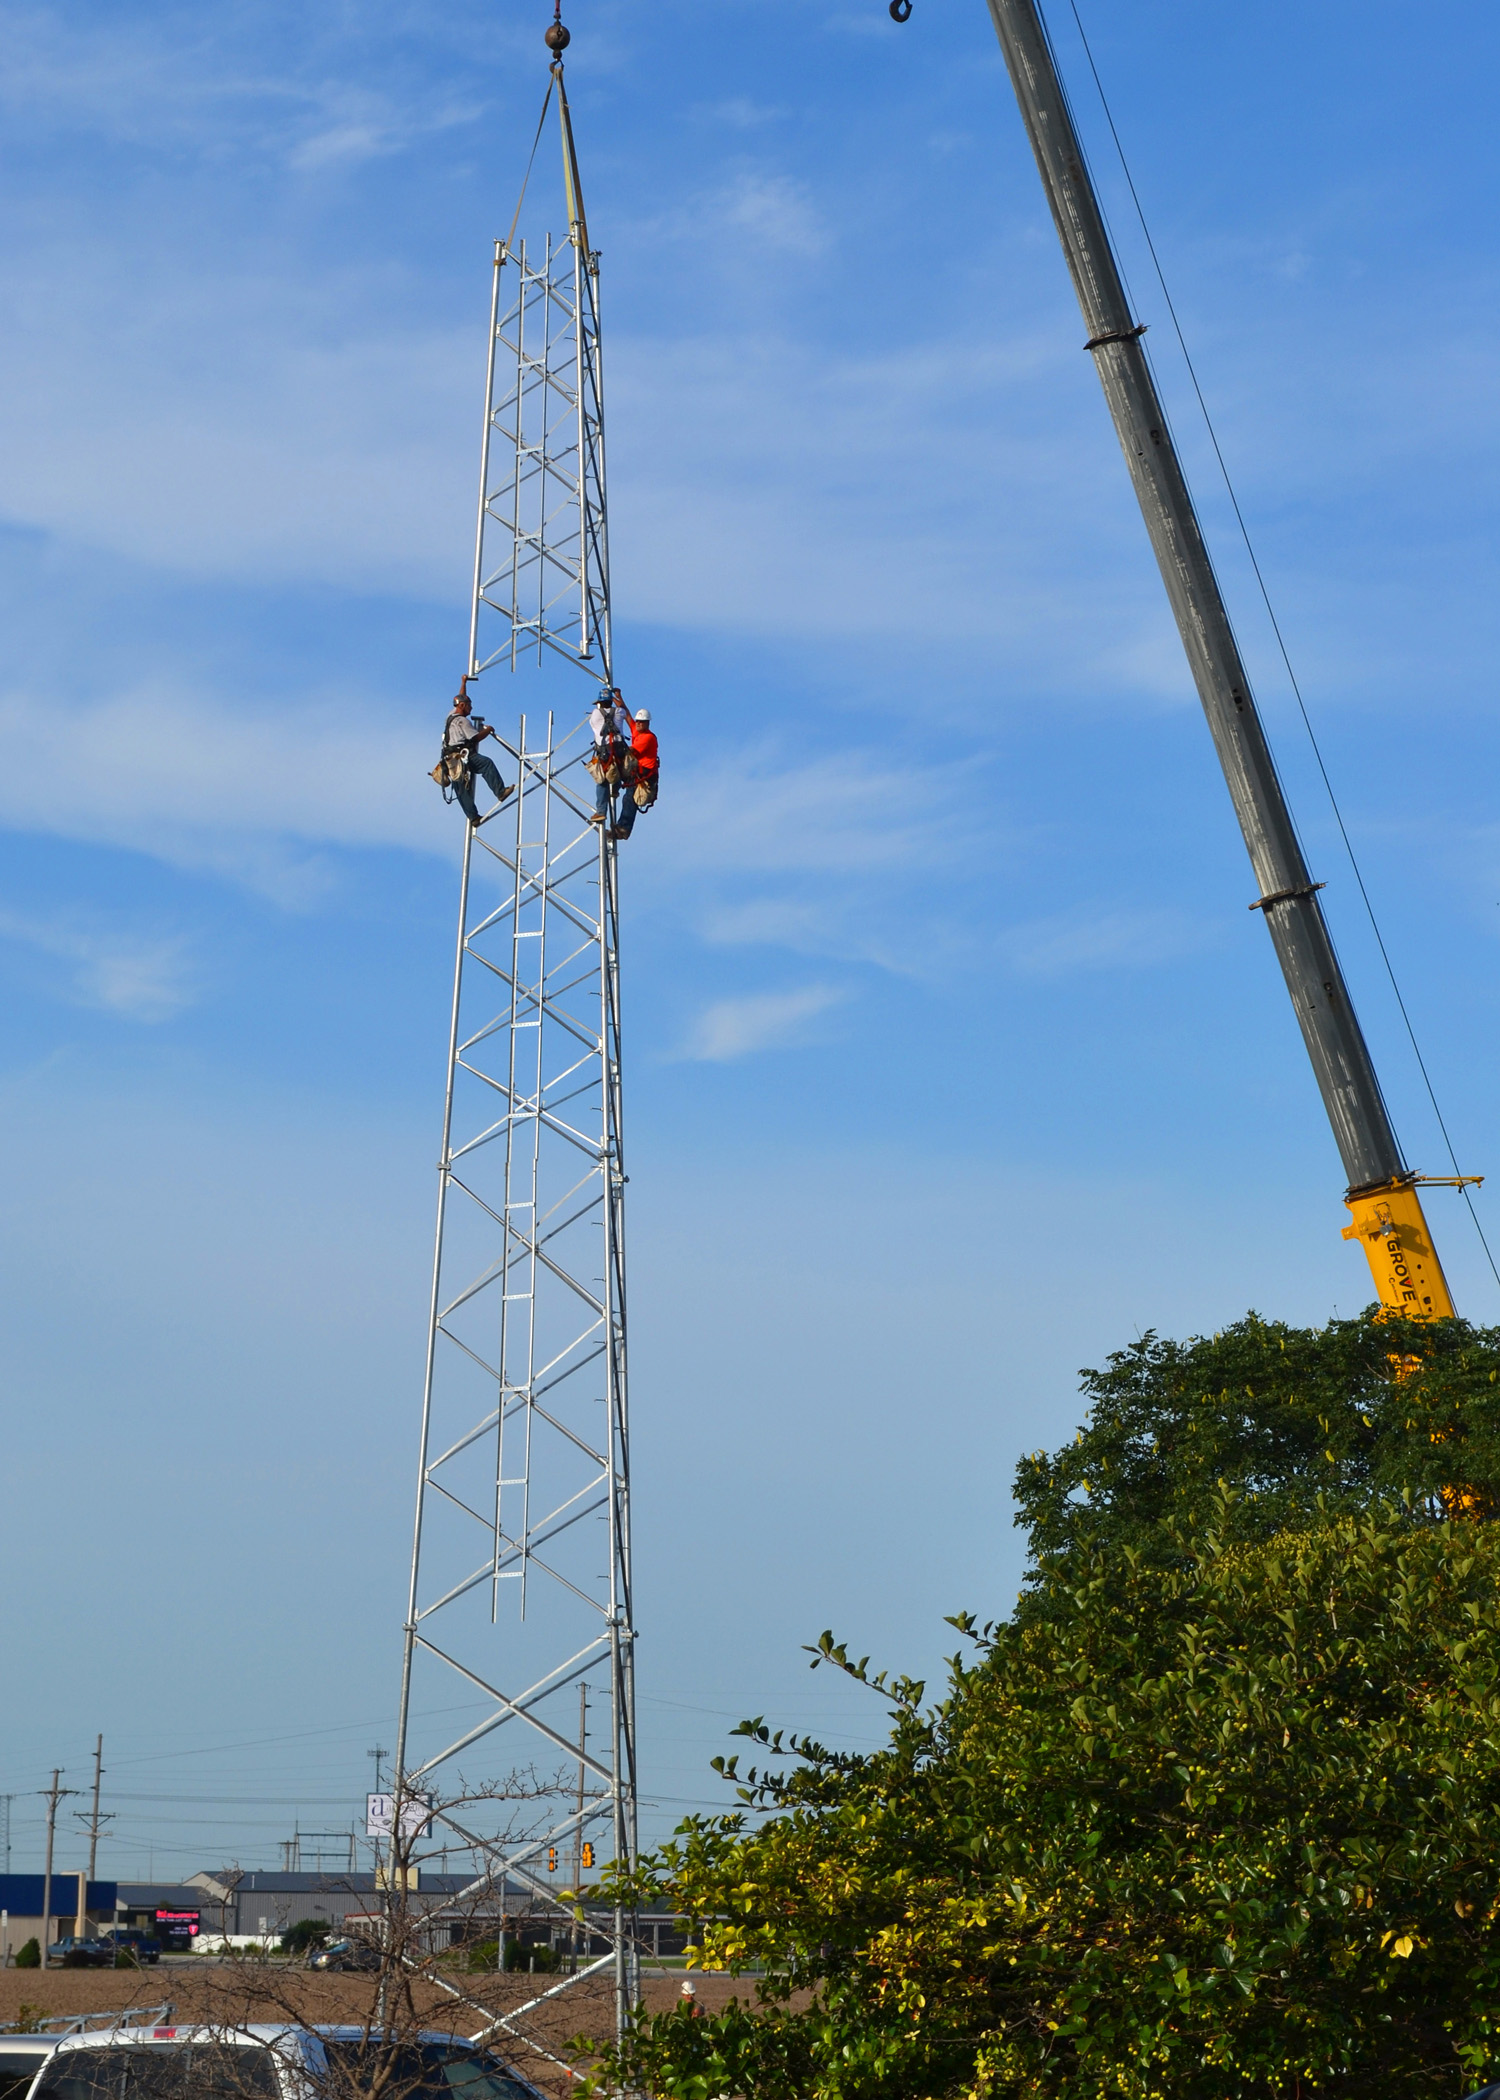 Three contractors climb the base of what will be a 150-foot tall steel communications tower at Midwest Energy's office in Hays.  The tower is one of nearly 60 system-wide to support new automated meters and other communications needs.